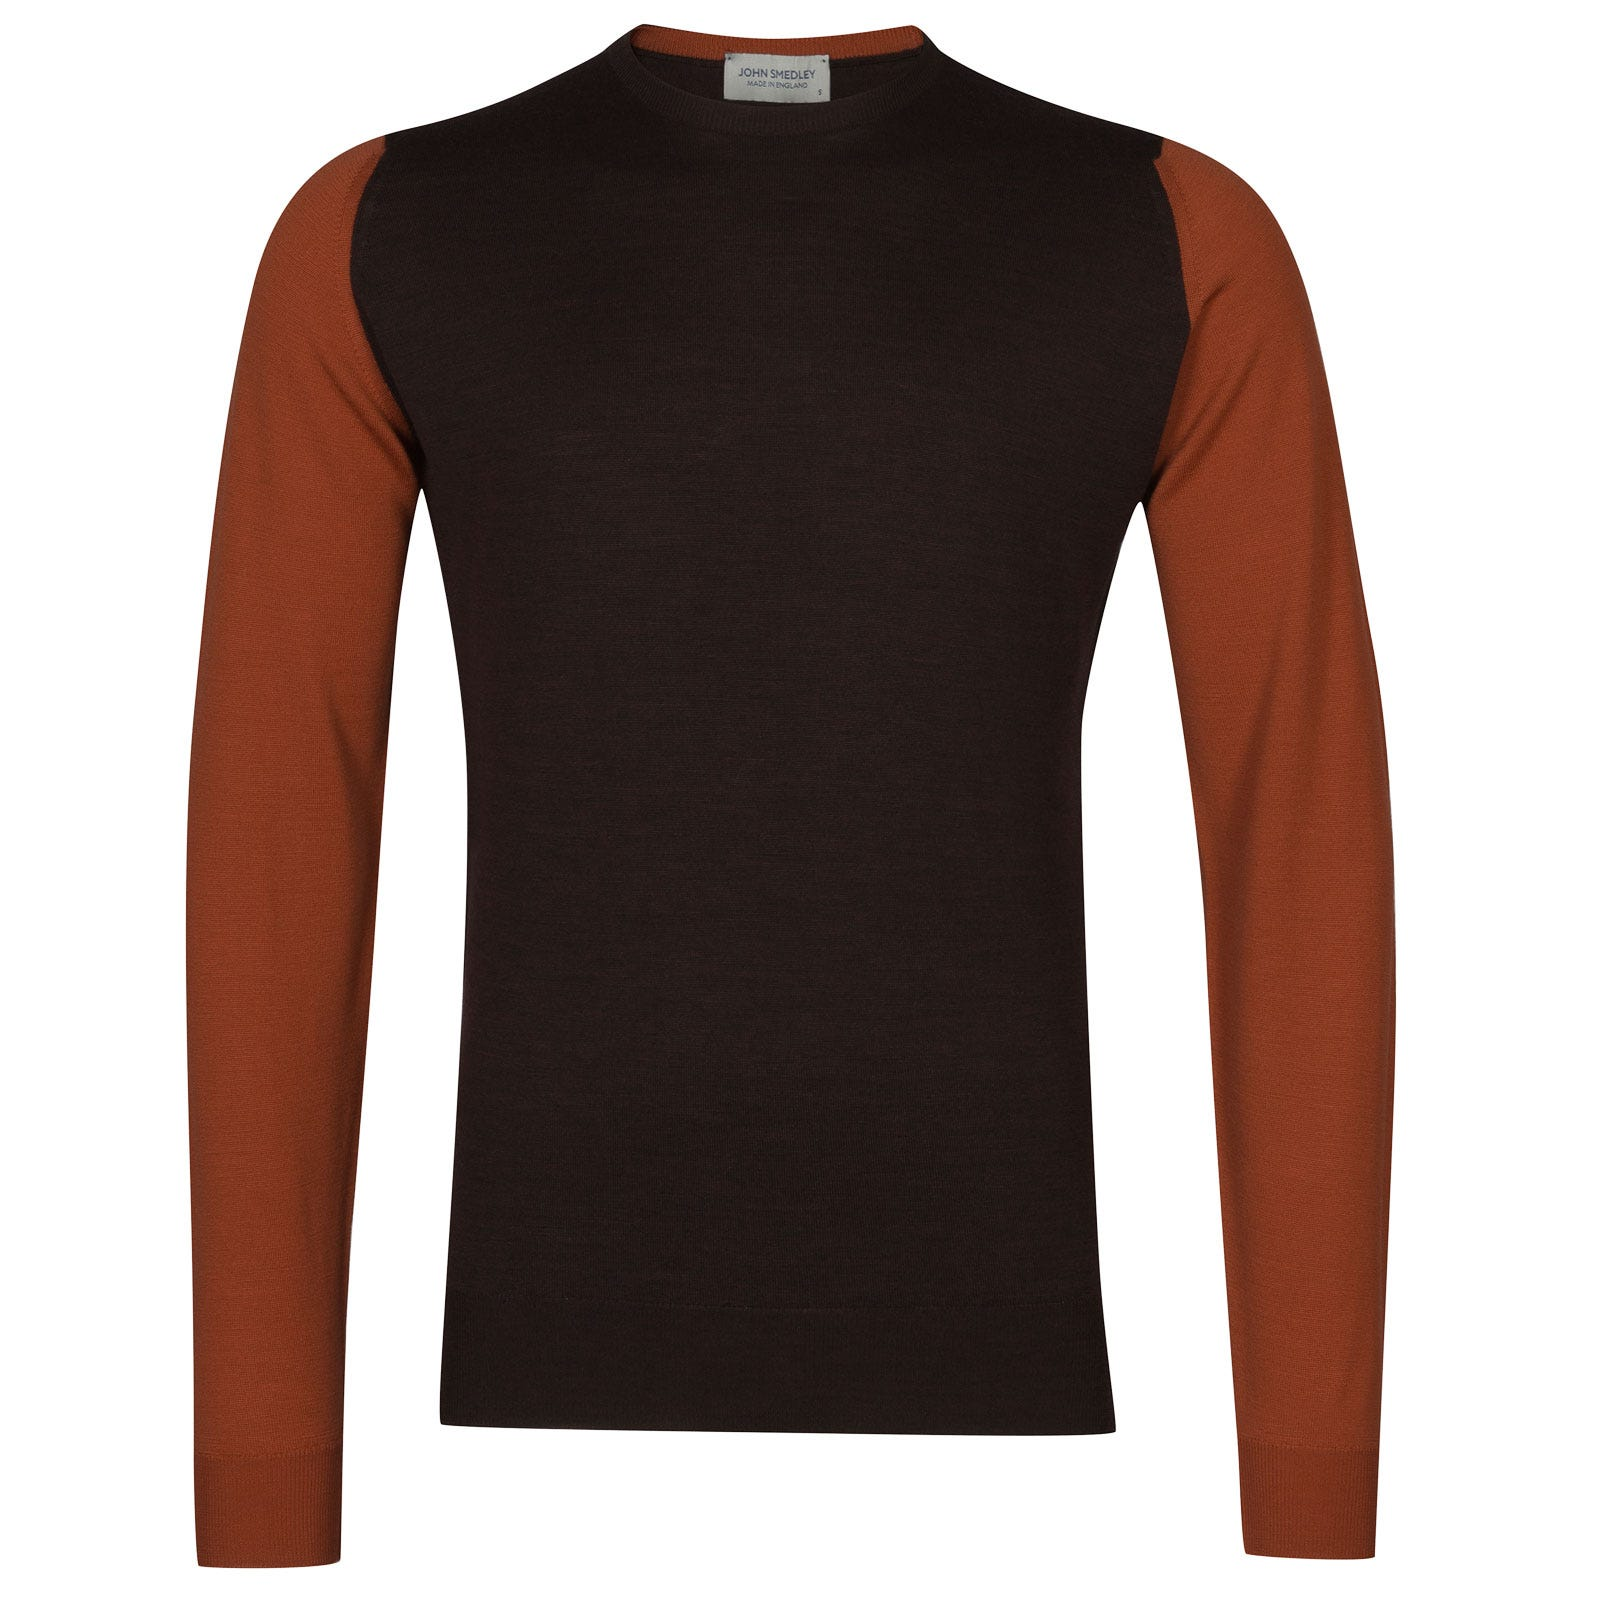 John Smedley hindlow Merino Wool Pullover in Chestnut/Flare Orange-L